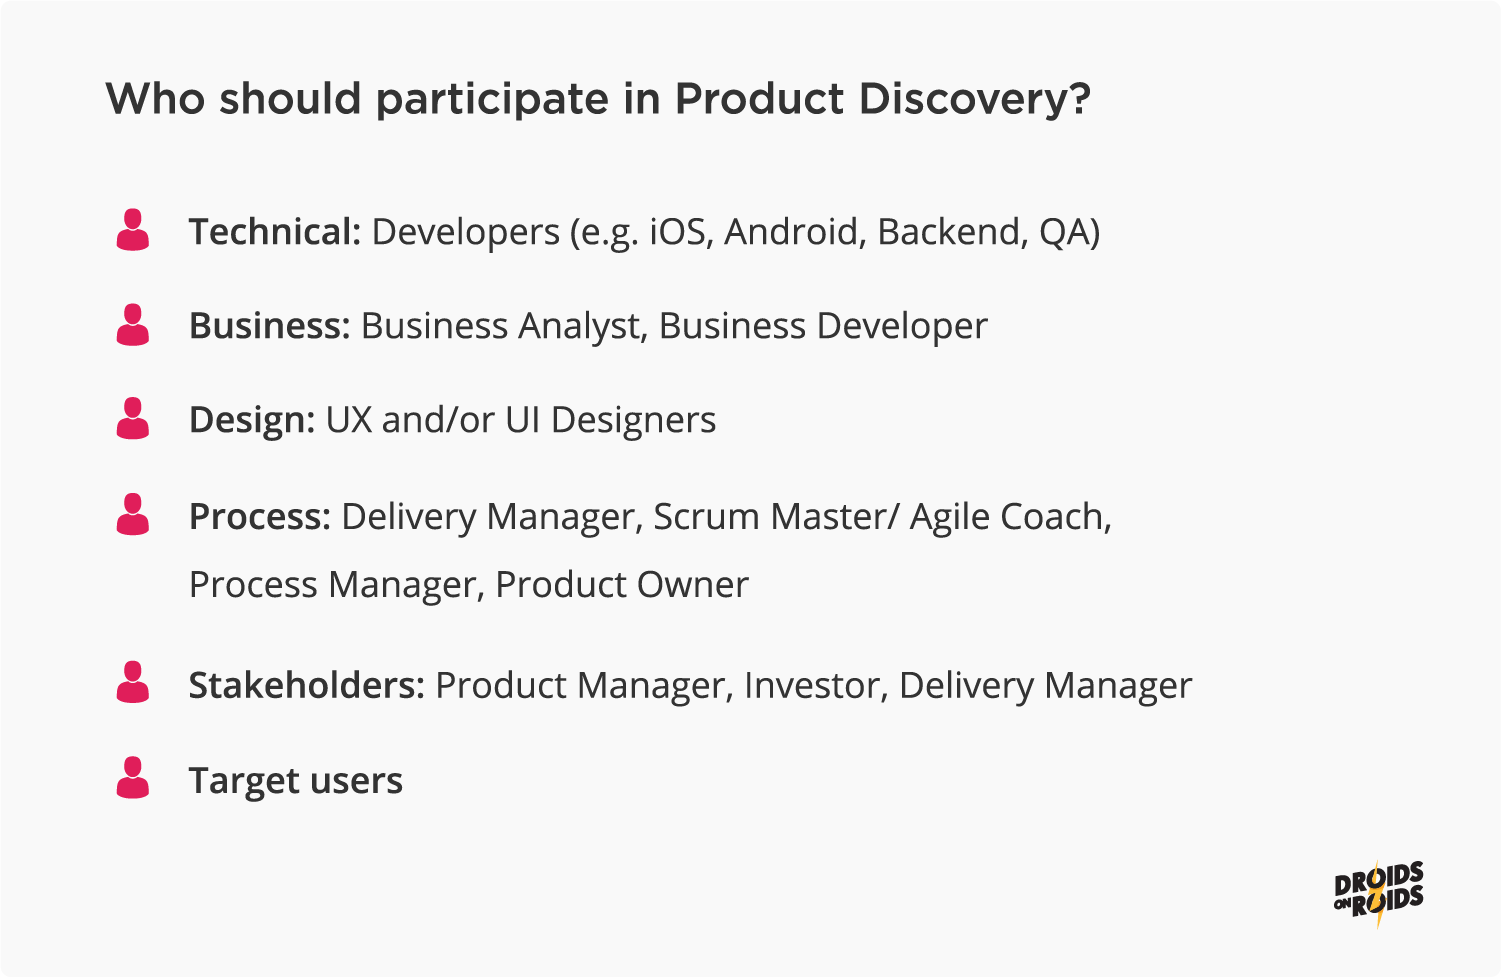 Who should participate in the Product Discover of a mobile app?